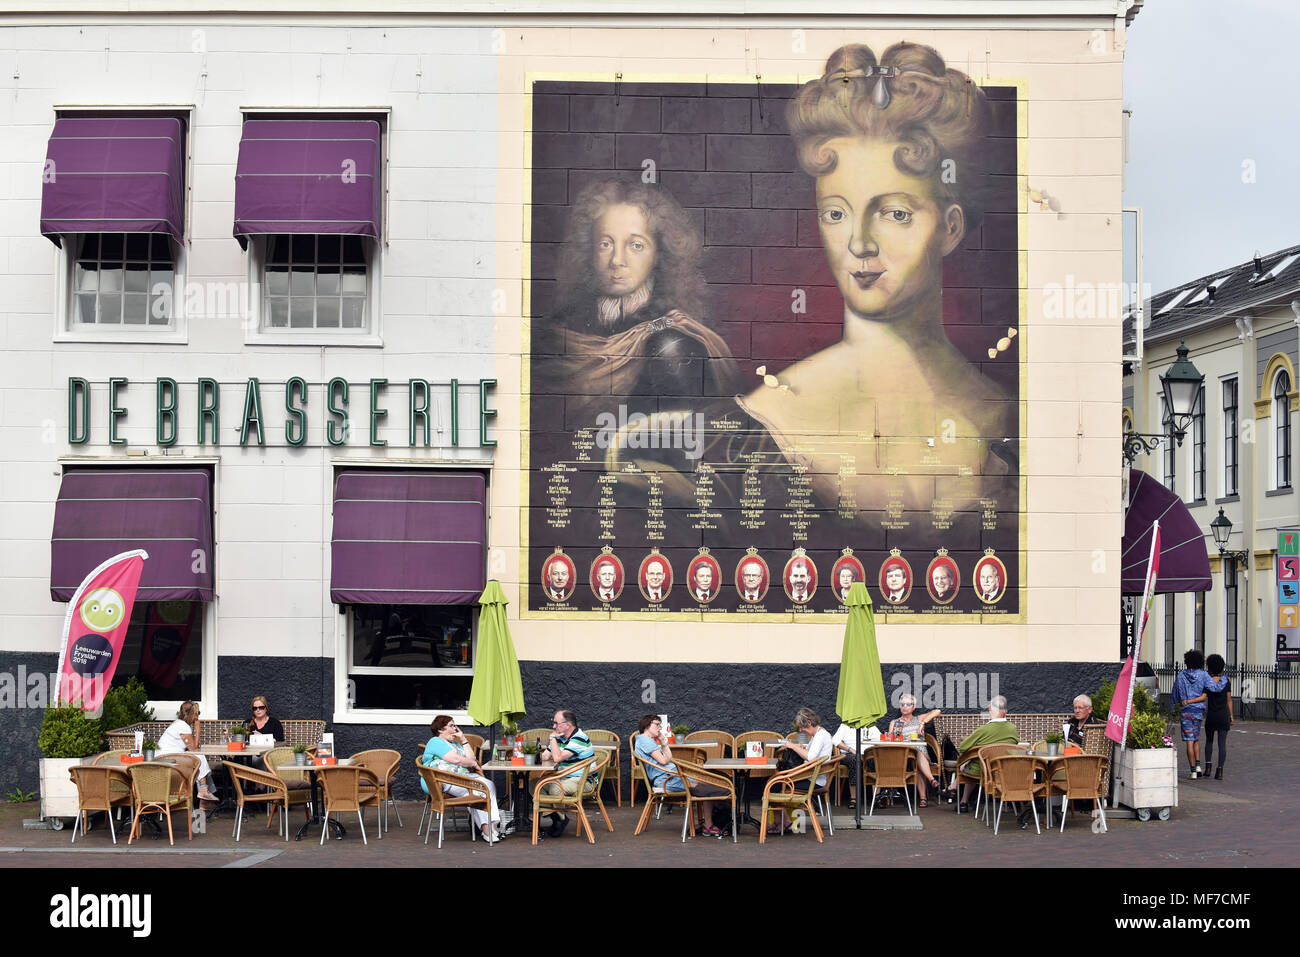 Streetart in Leeuwarden. Painting of Landgravine Marie Louise of Hesse-Kassel and the genealogical tree of the European Royals. - Stock Image